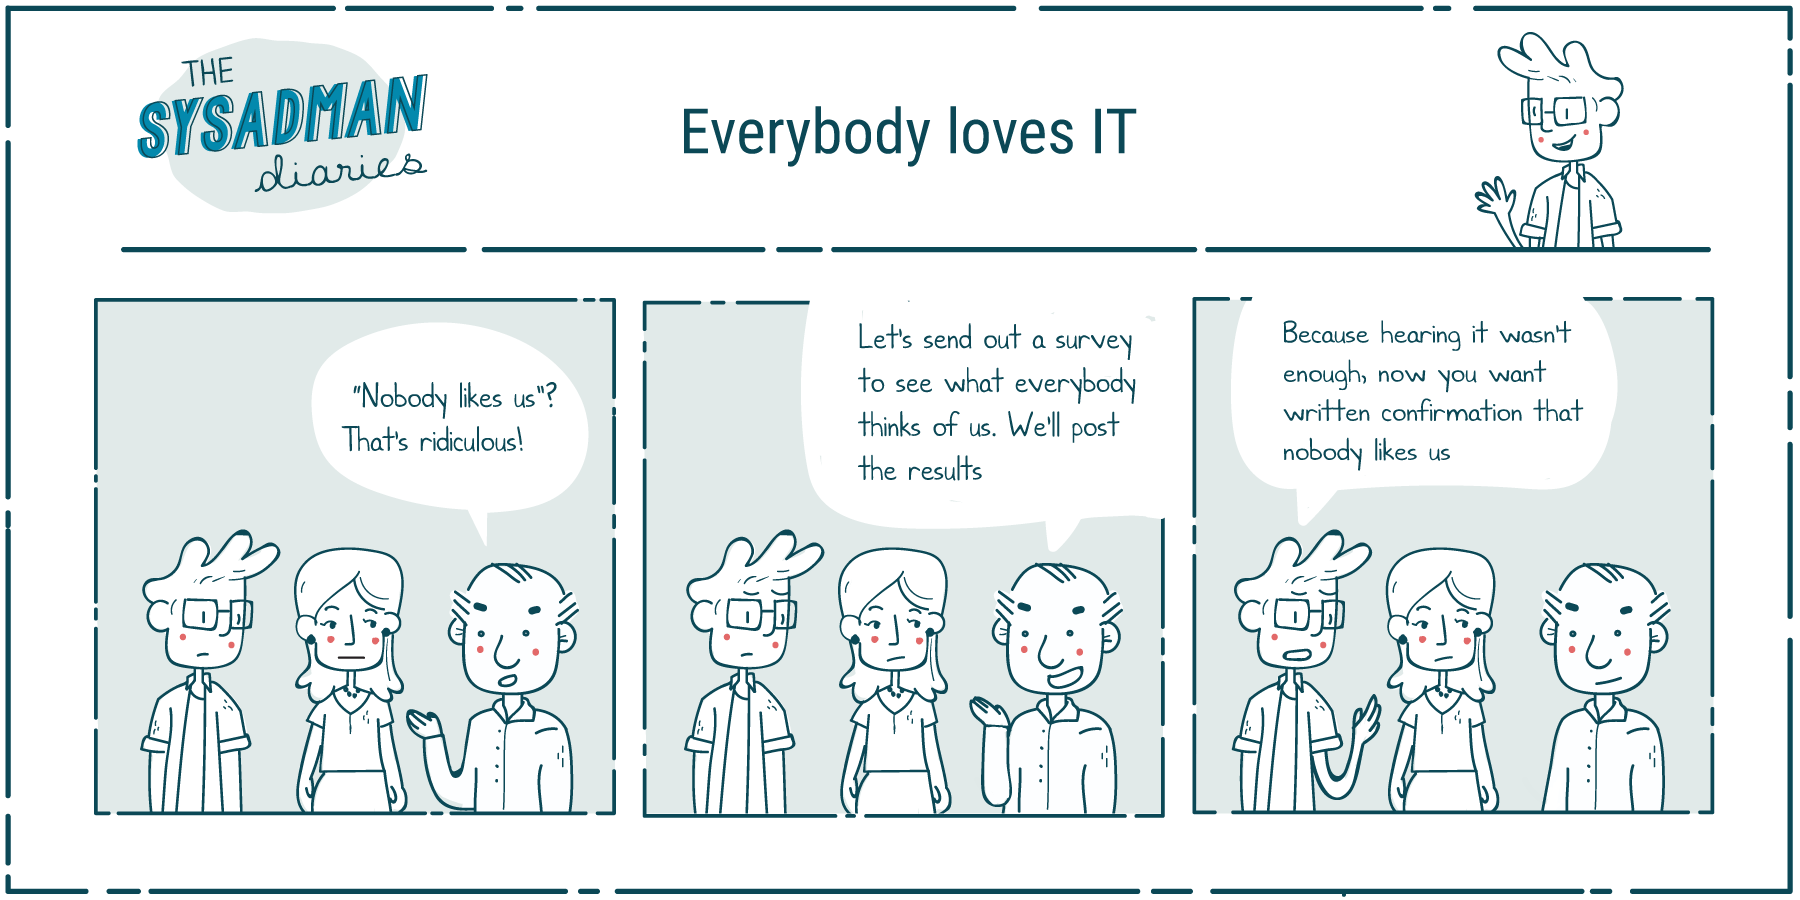 World-class ITSM - Everyone should love the IT guy!